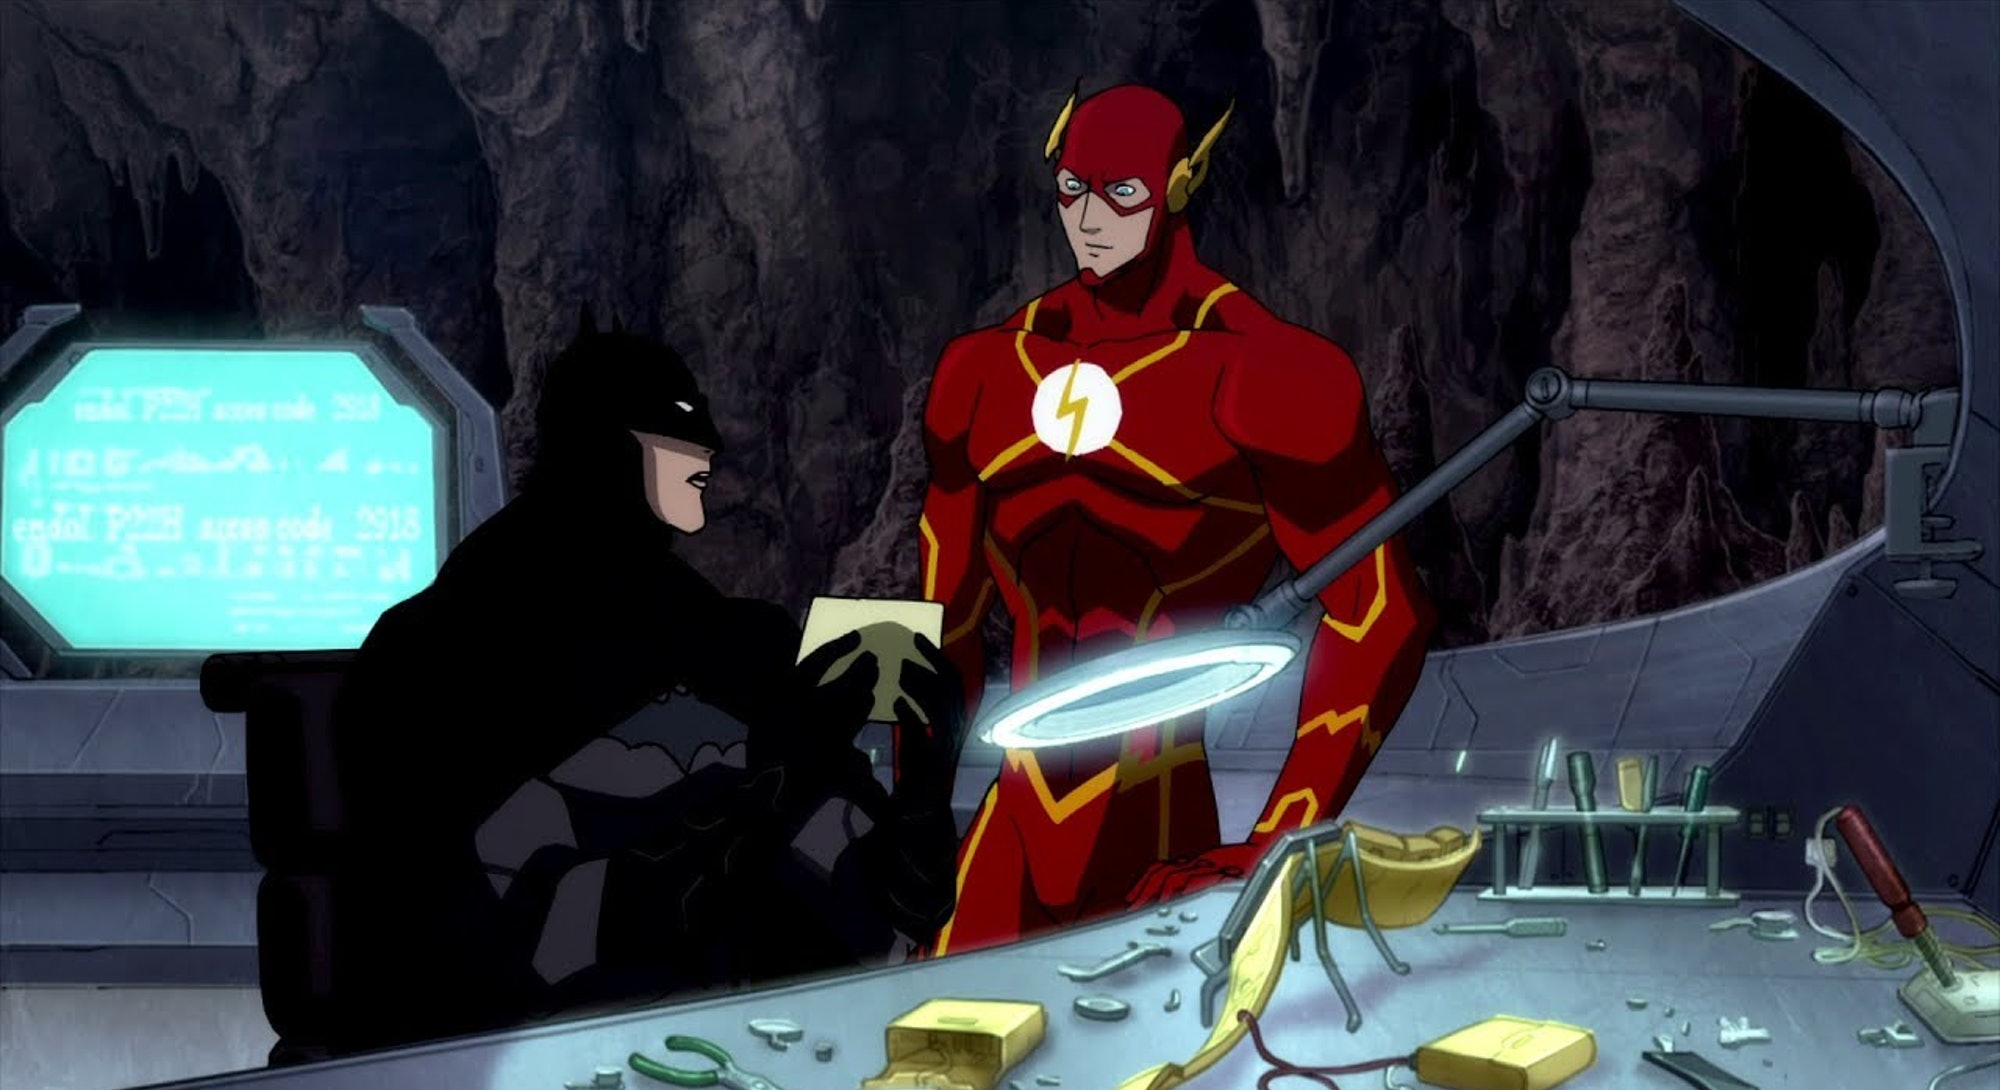 batman and flash from justice league flashpoint paradox